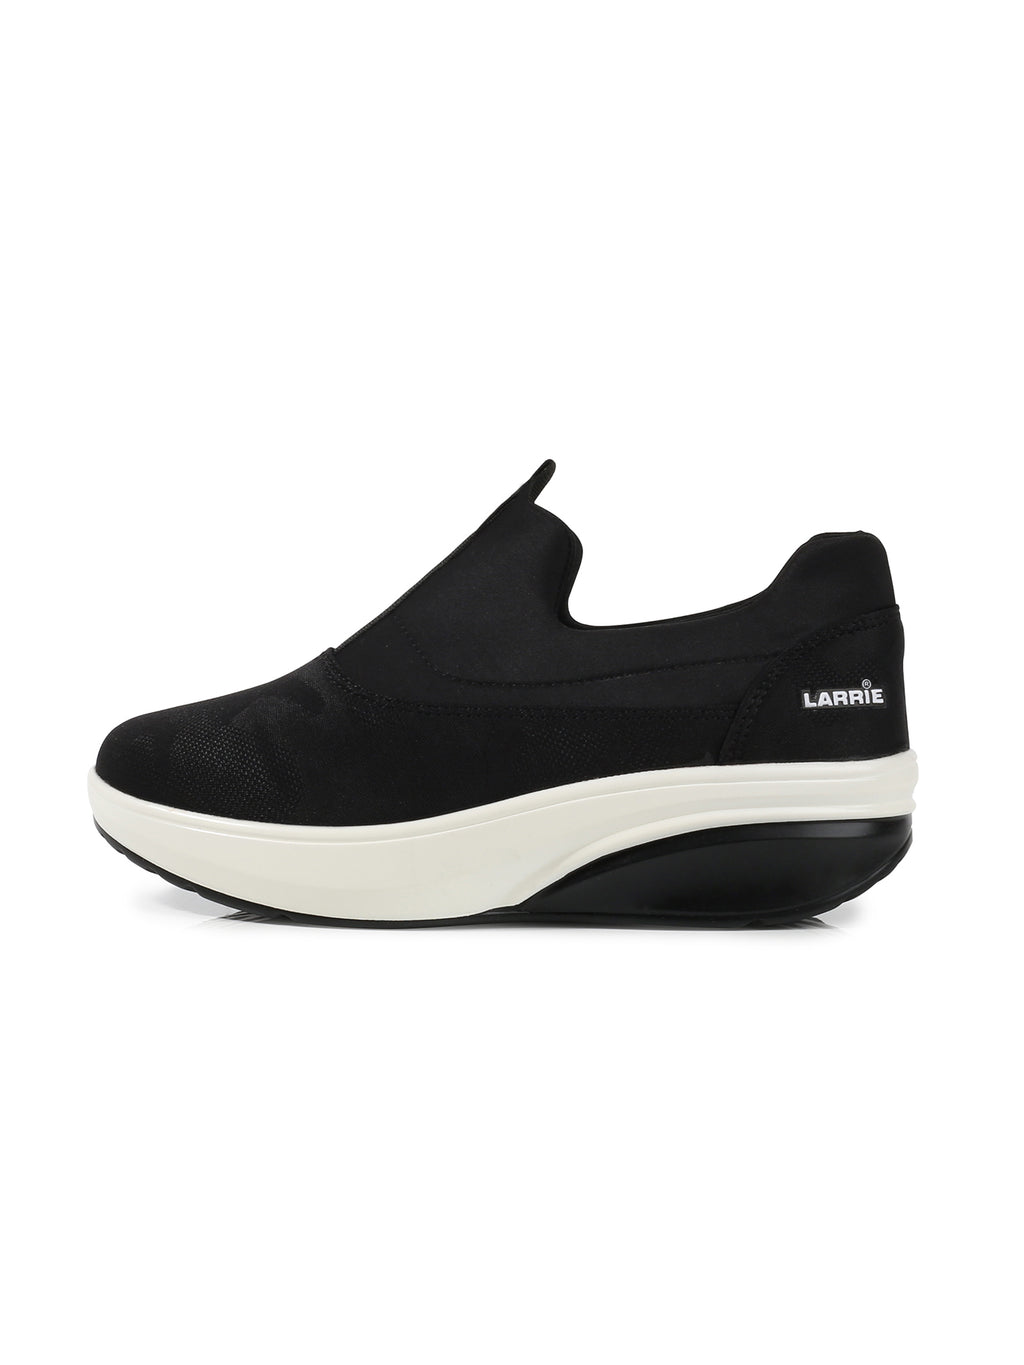 Larrie Black Durable Extra Cushion Sneakers